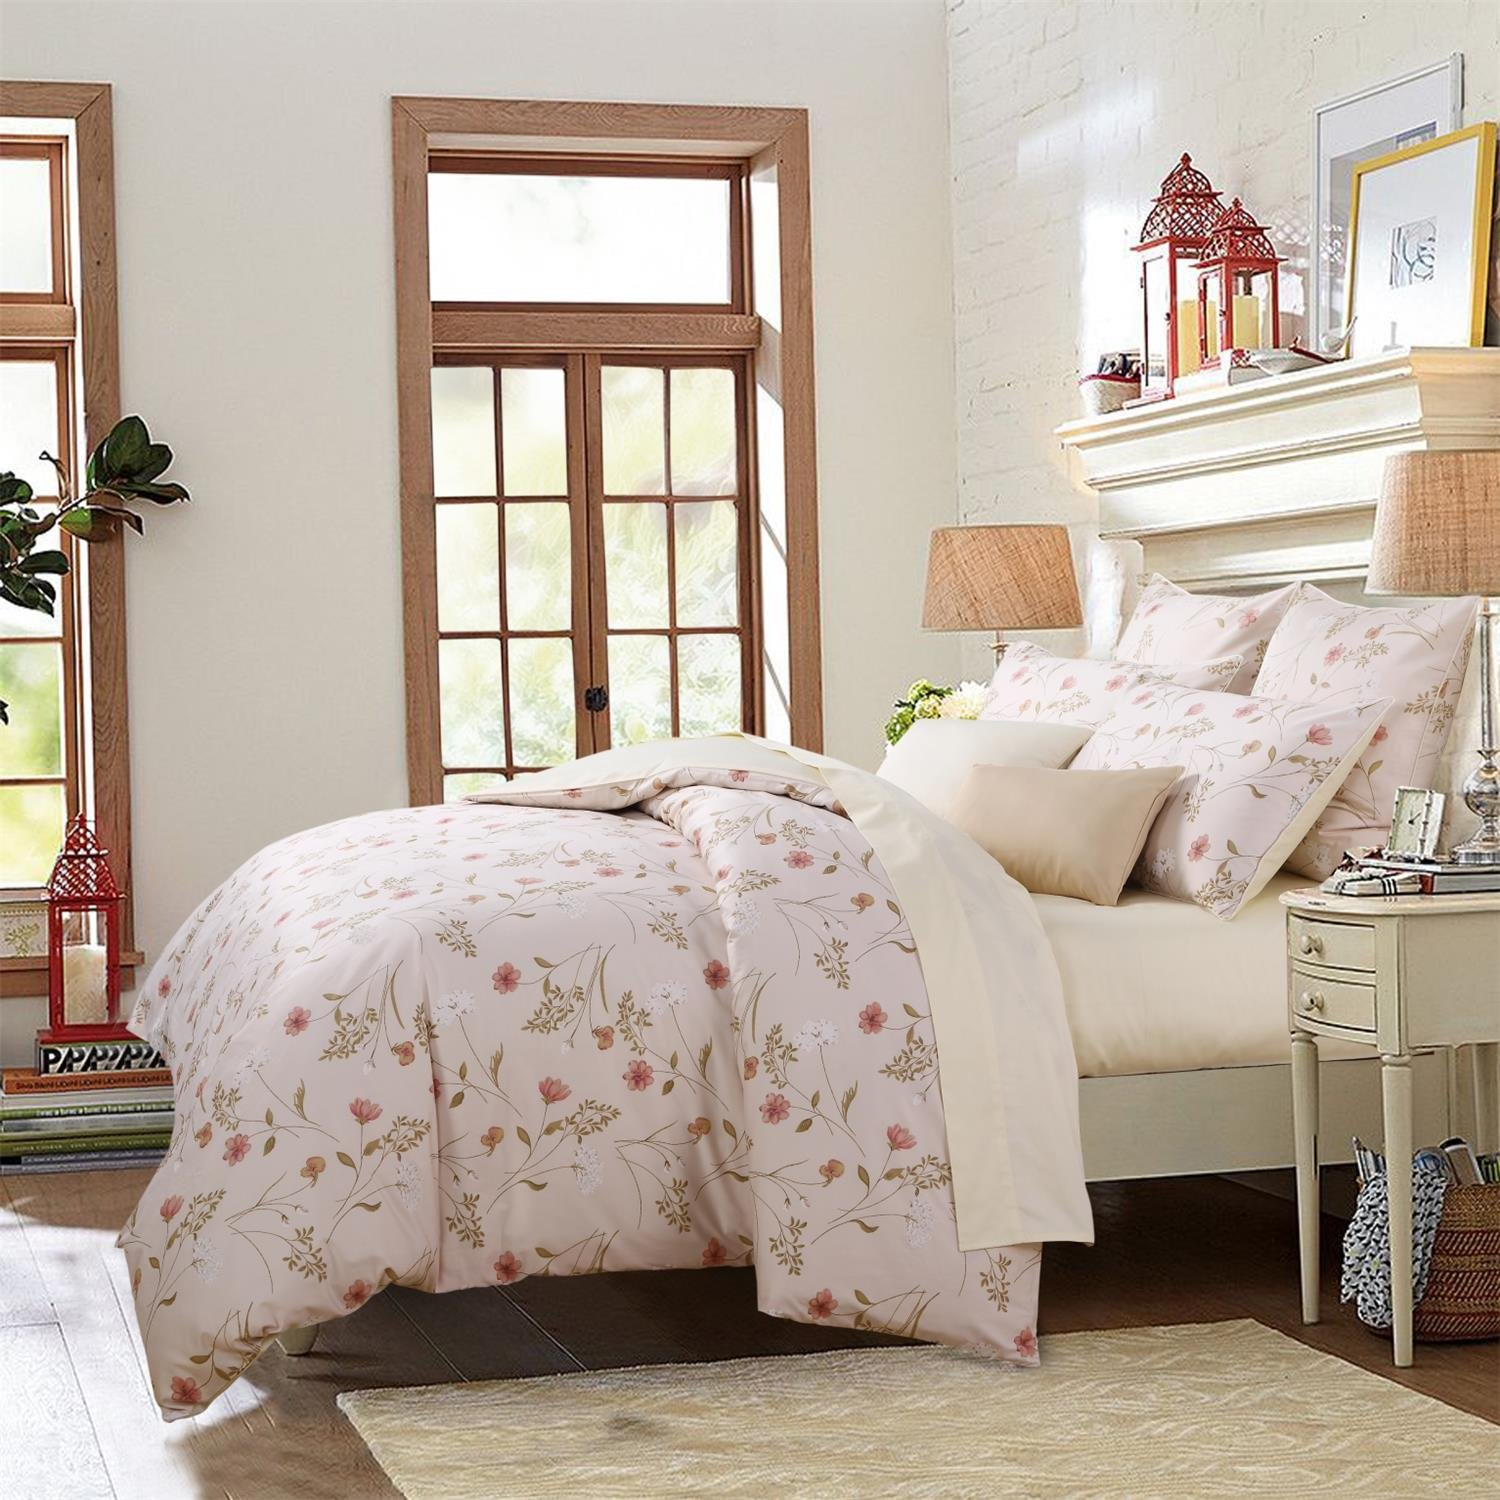 Brandream Farmhouse Bedding 3 Piece Floral Duvet Cover Set